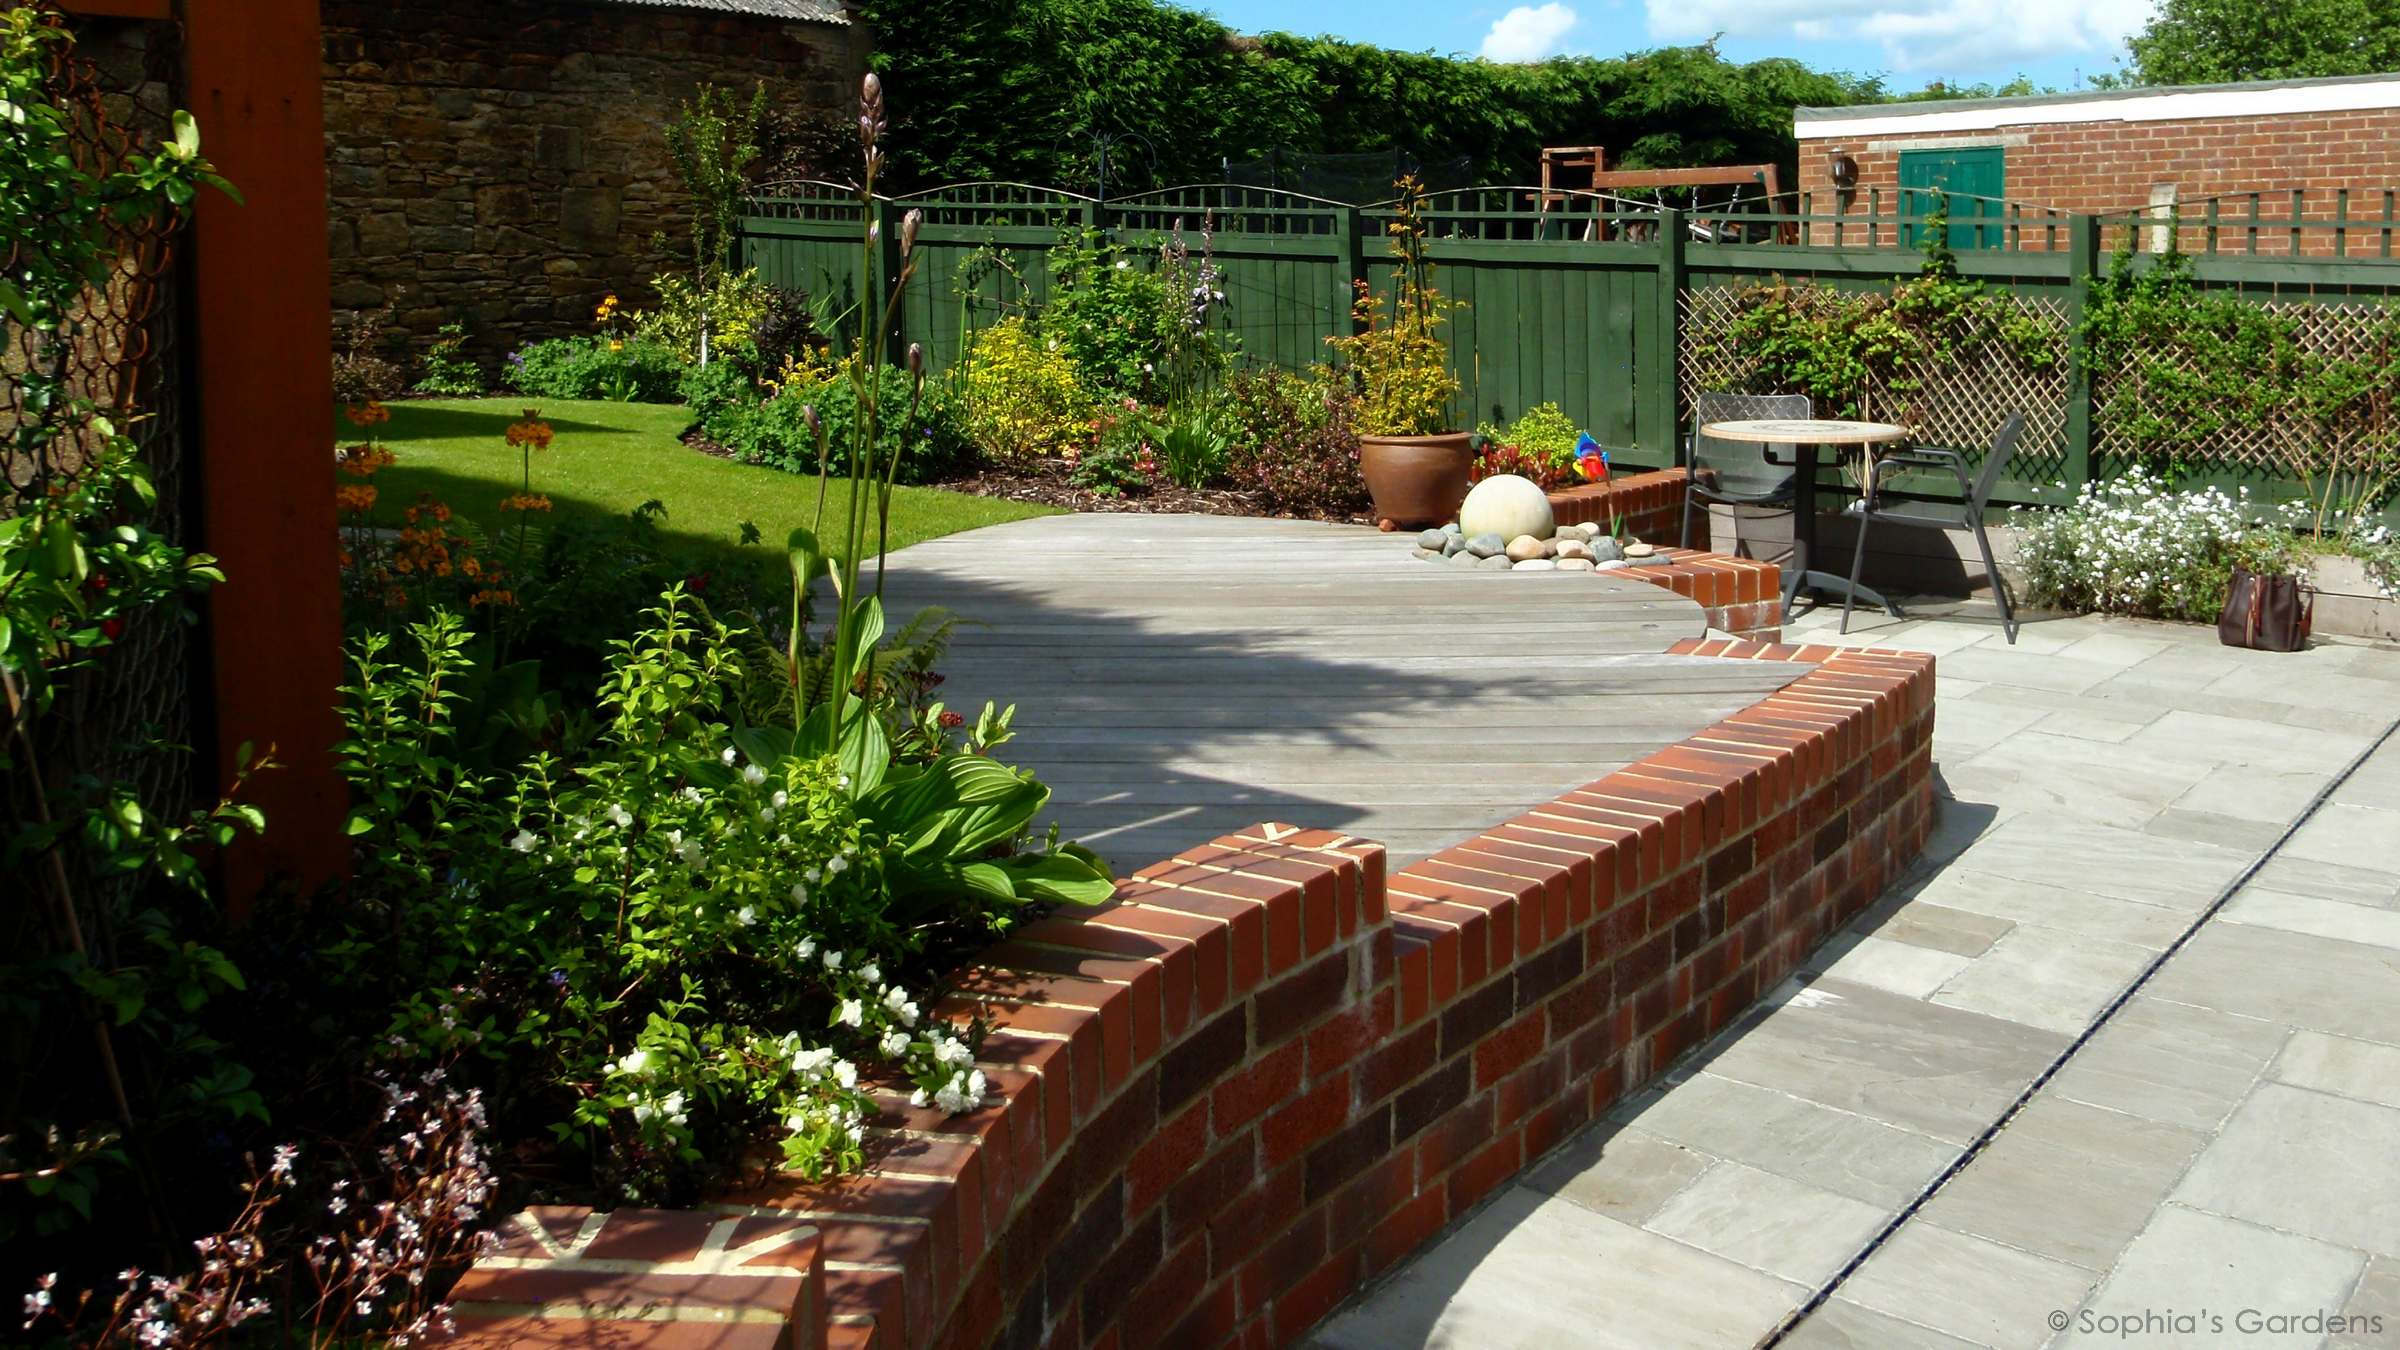 Curvaceous brick wall, hardwood deck and water features. Low-maintenance design in Lanchester, by Sophia's Gardens